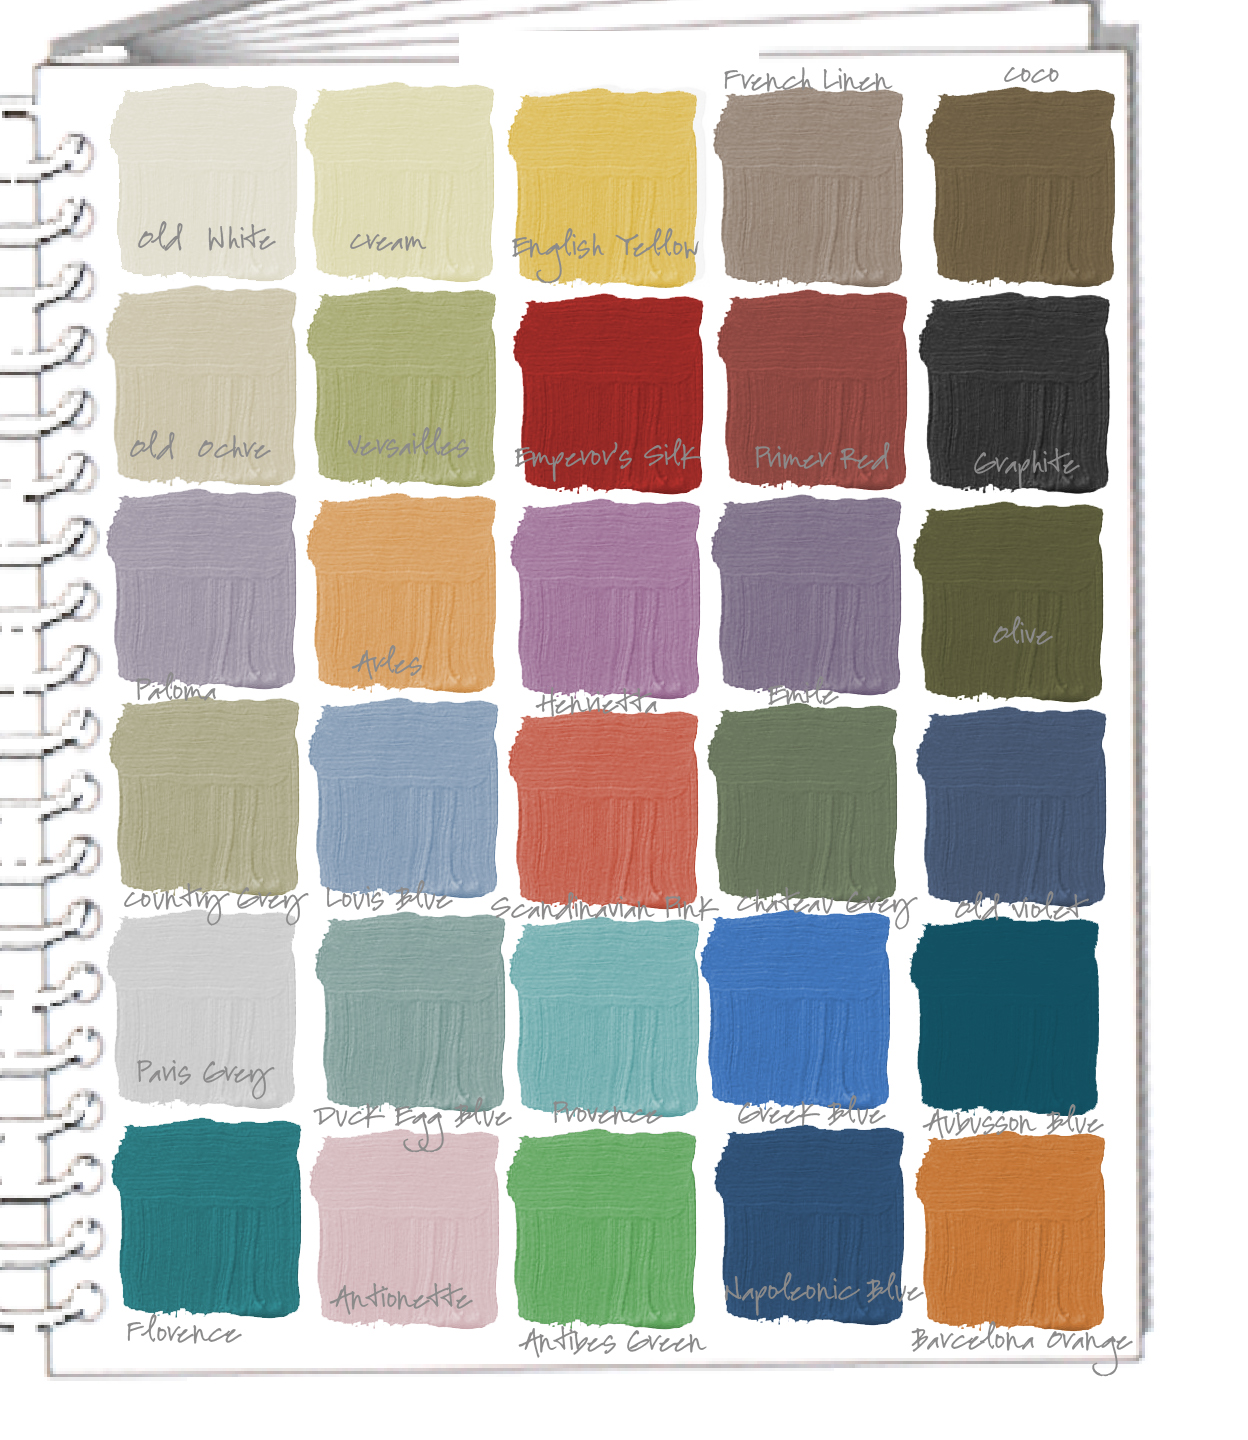 Colors of annie sloan chalk paint - Tools Tools Annie Sloan Swatch Book